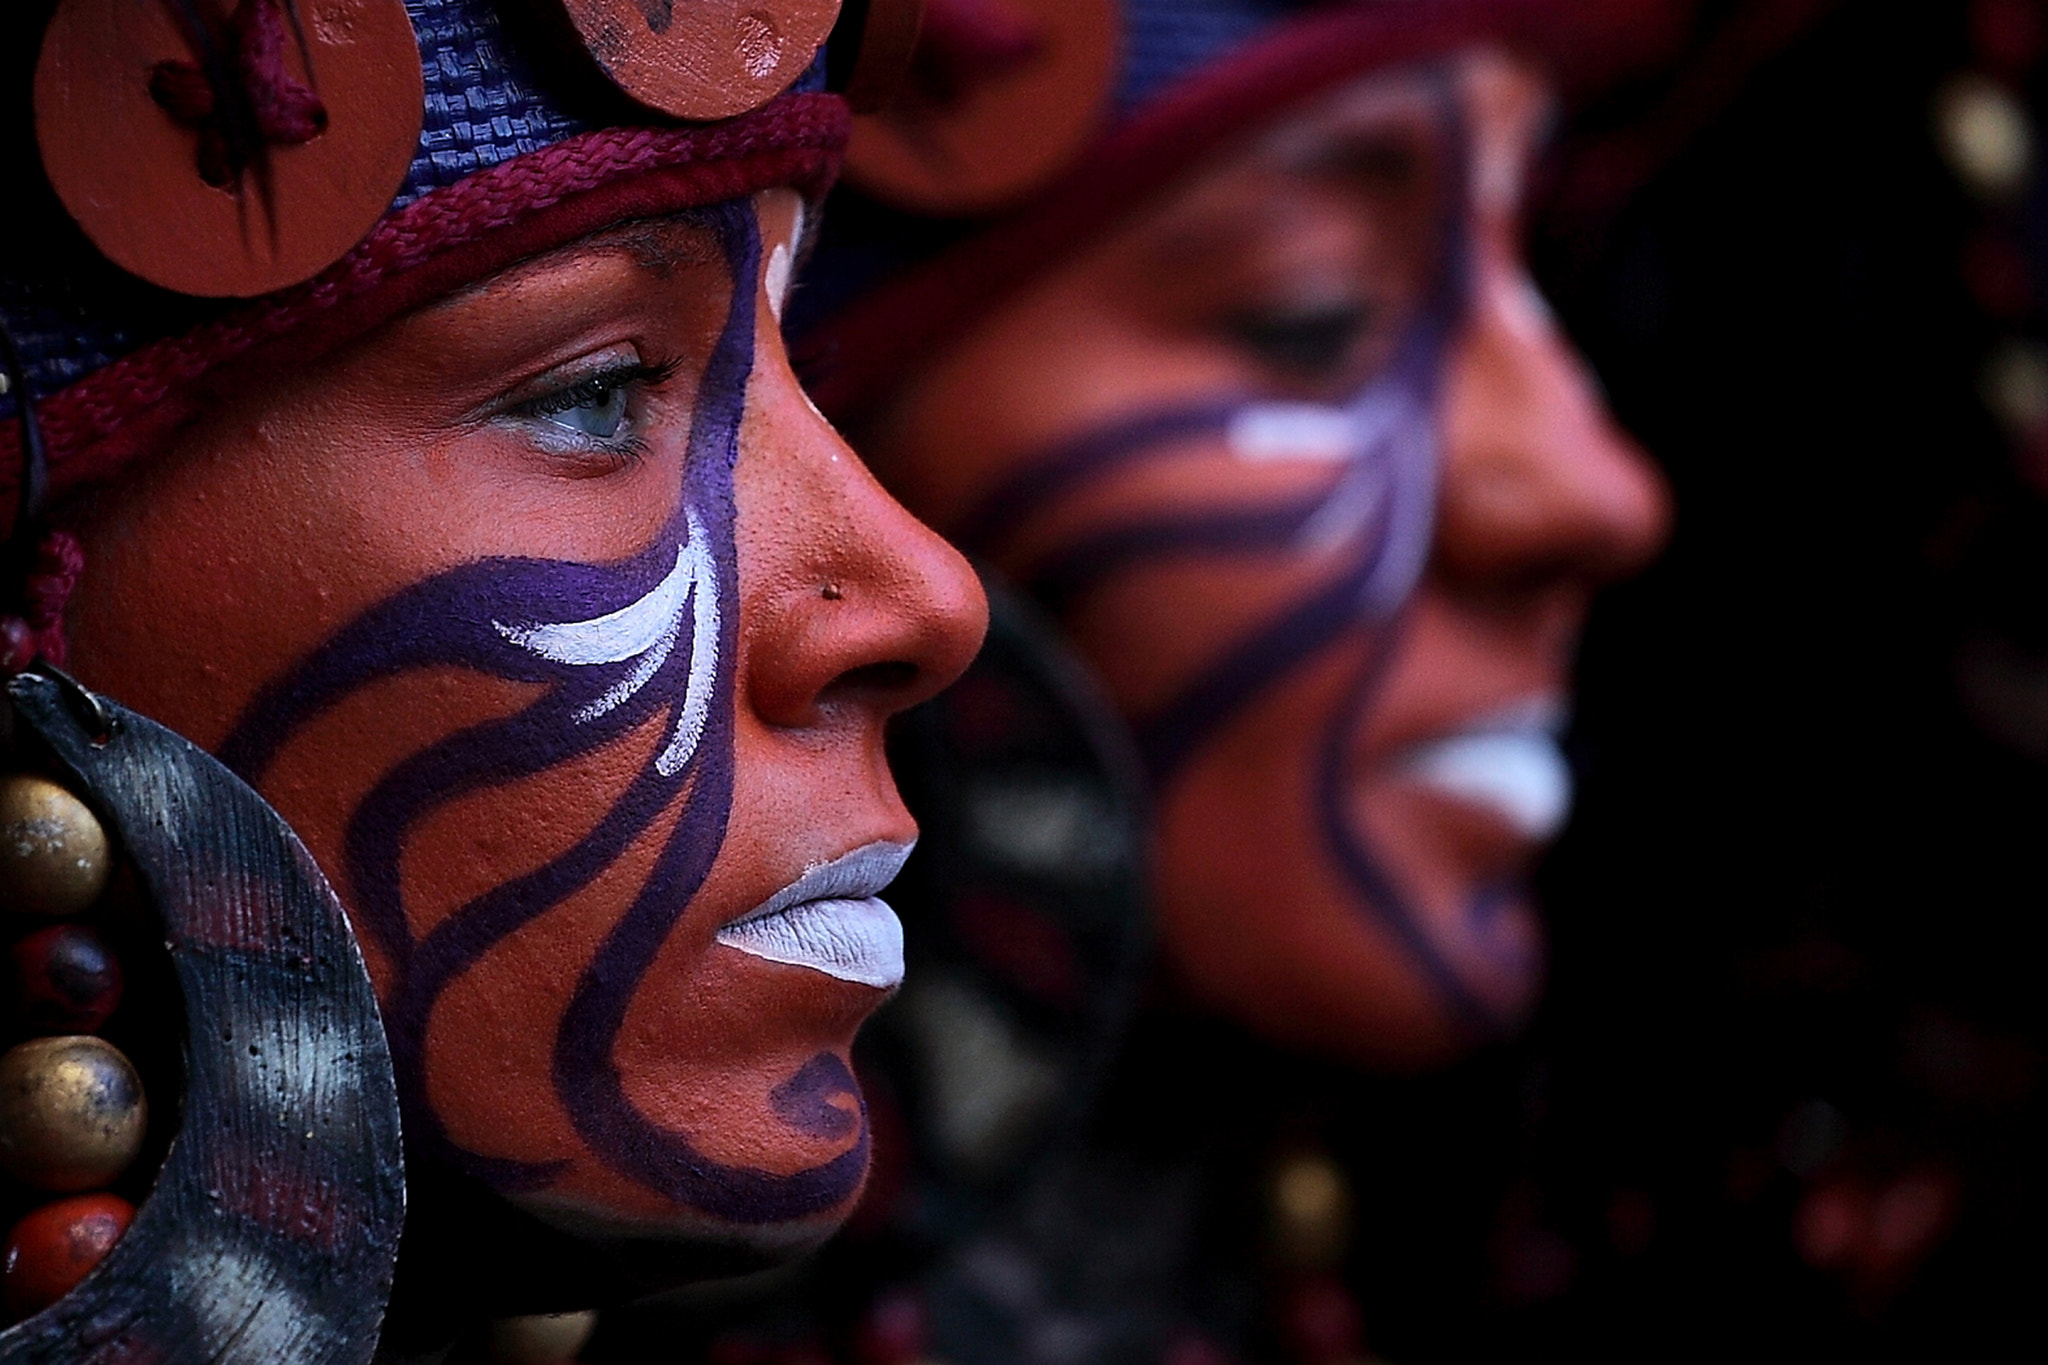 Photograph Tribal beauty by Vicente Concha on 500px